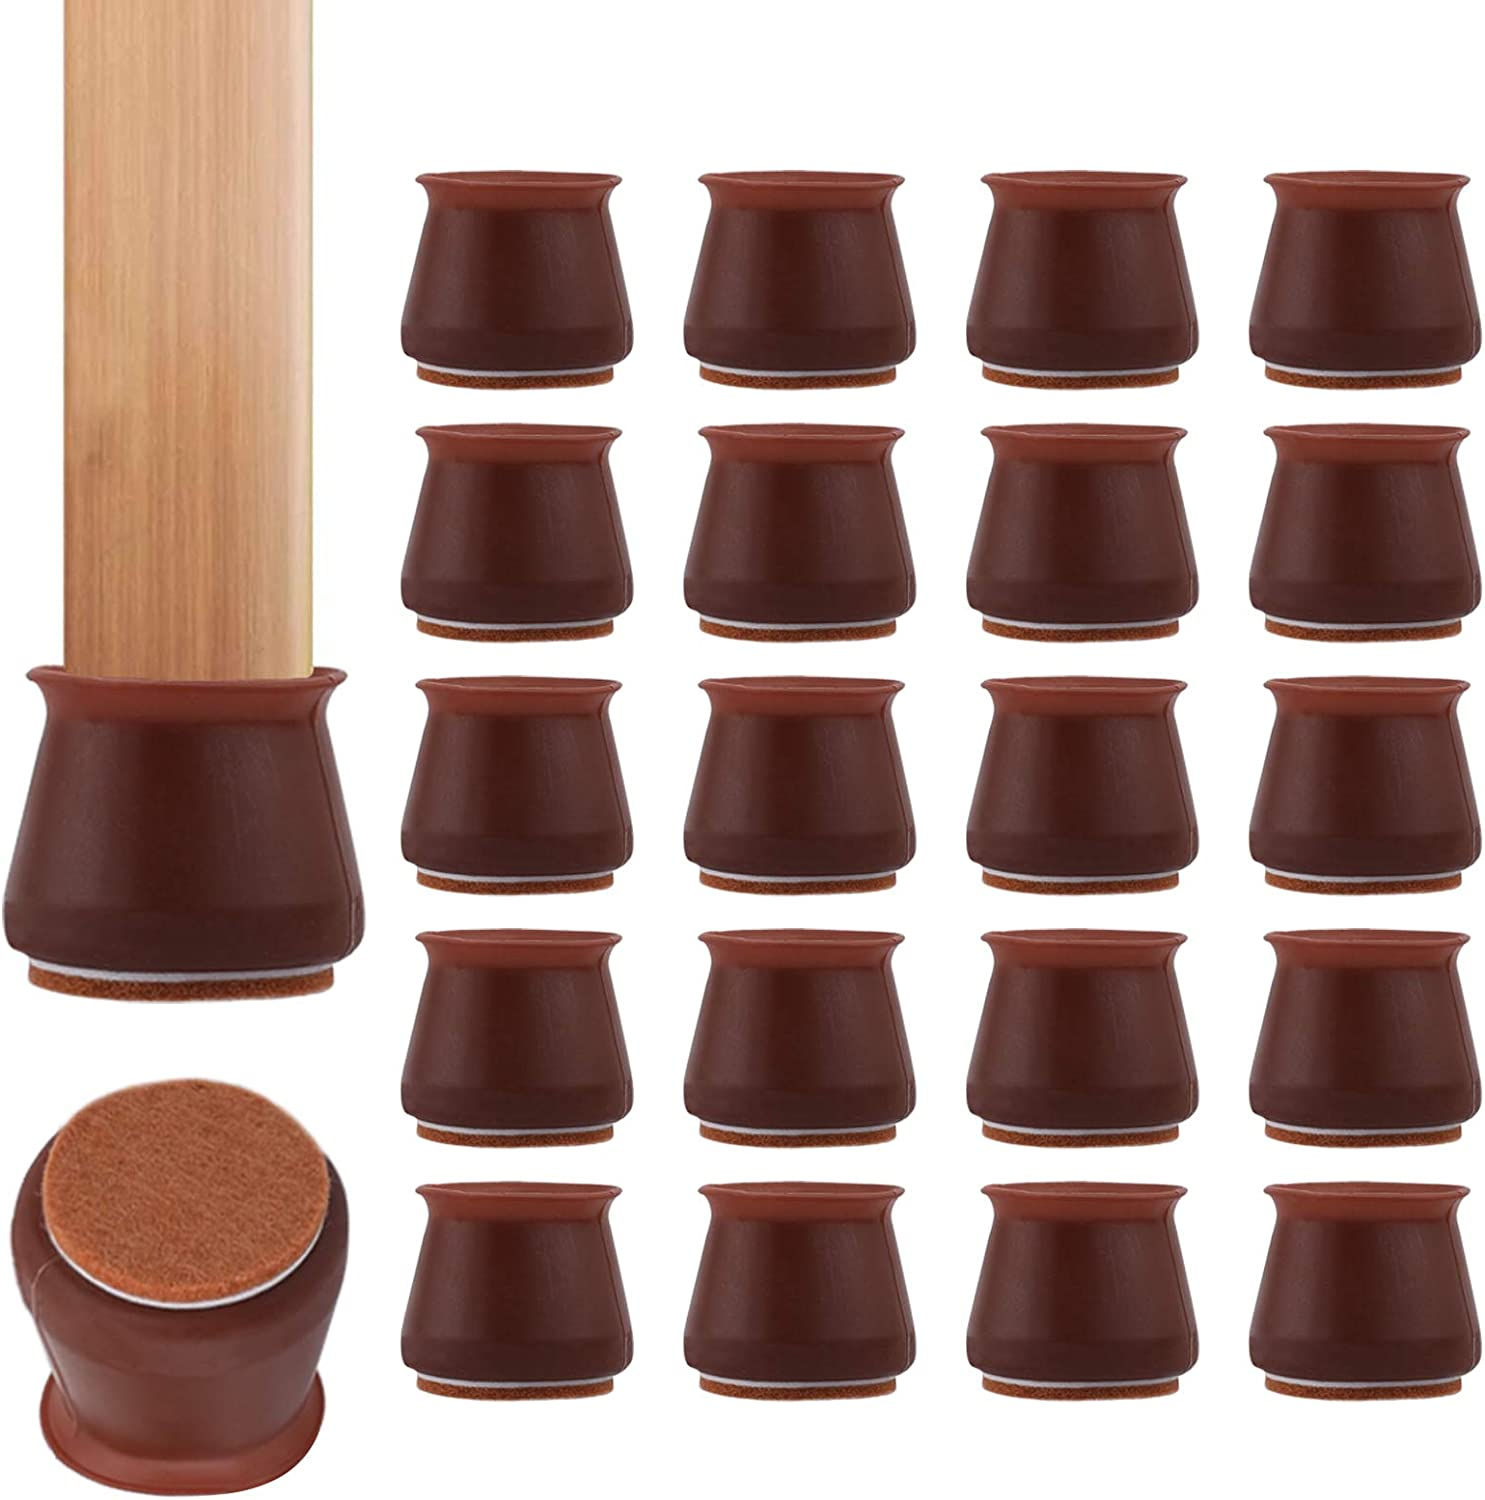 [36 Pack] Maylai Chair Leg Protector Caps, Felt Bottom Soft Silicone Furniture Foot Cup Pads Furniture Table Feet Covers for Floor Scratchless, Noiseless [Dark Red] (1.17'' to 1.77'')